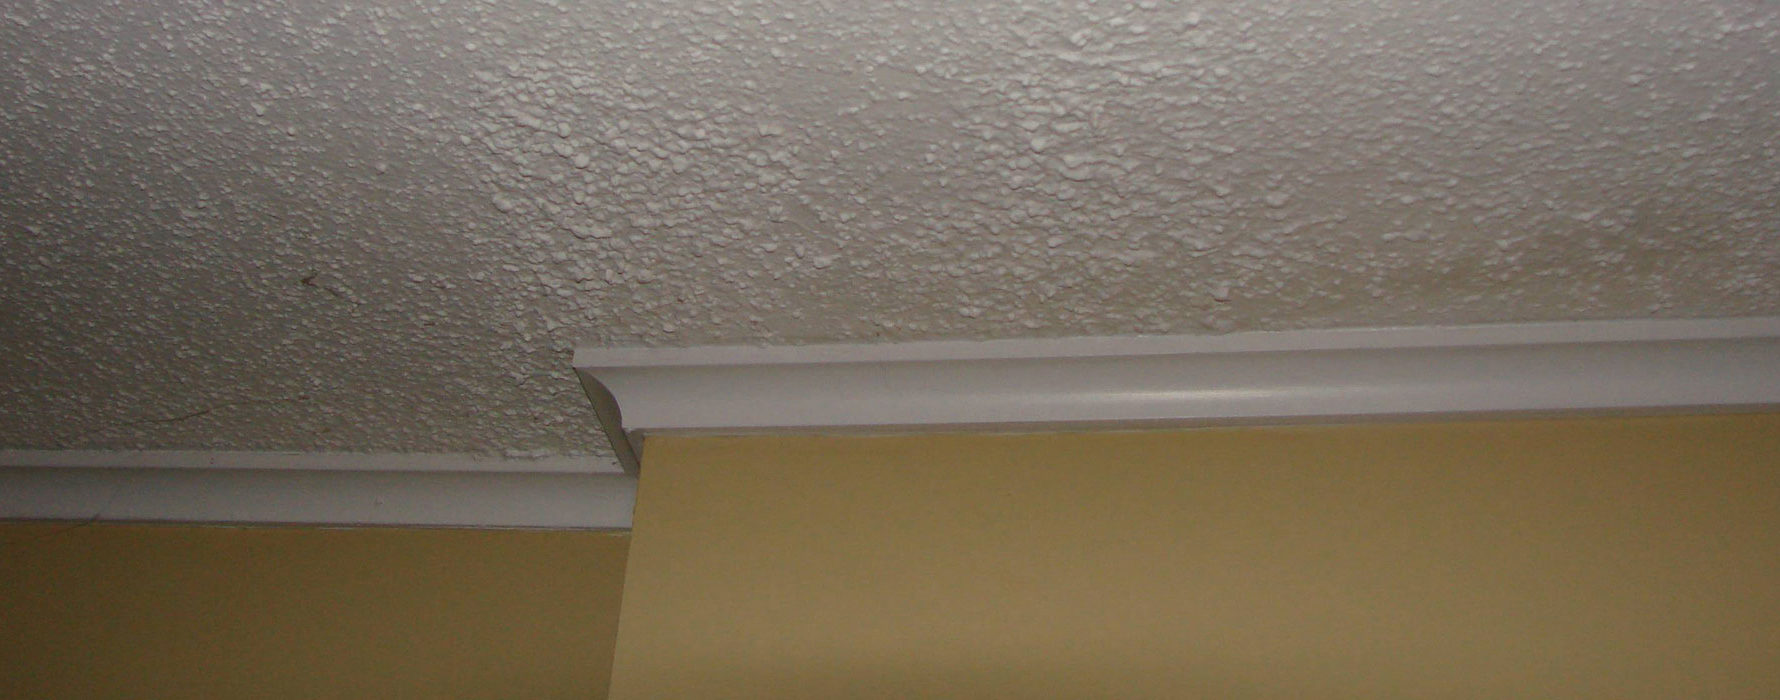 Ceiling Stucco Removal | Popcorn Ceiling Removal & Textured Ceilings ...